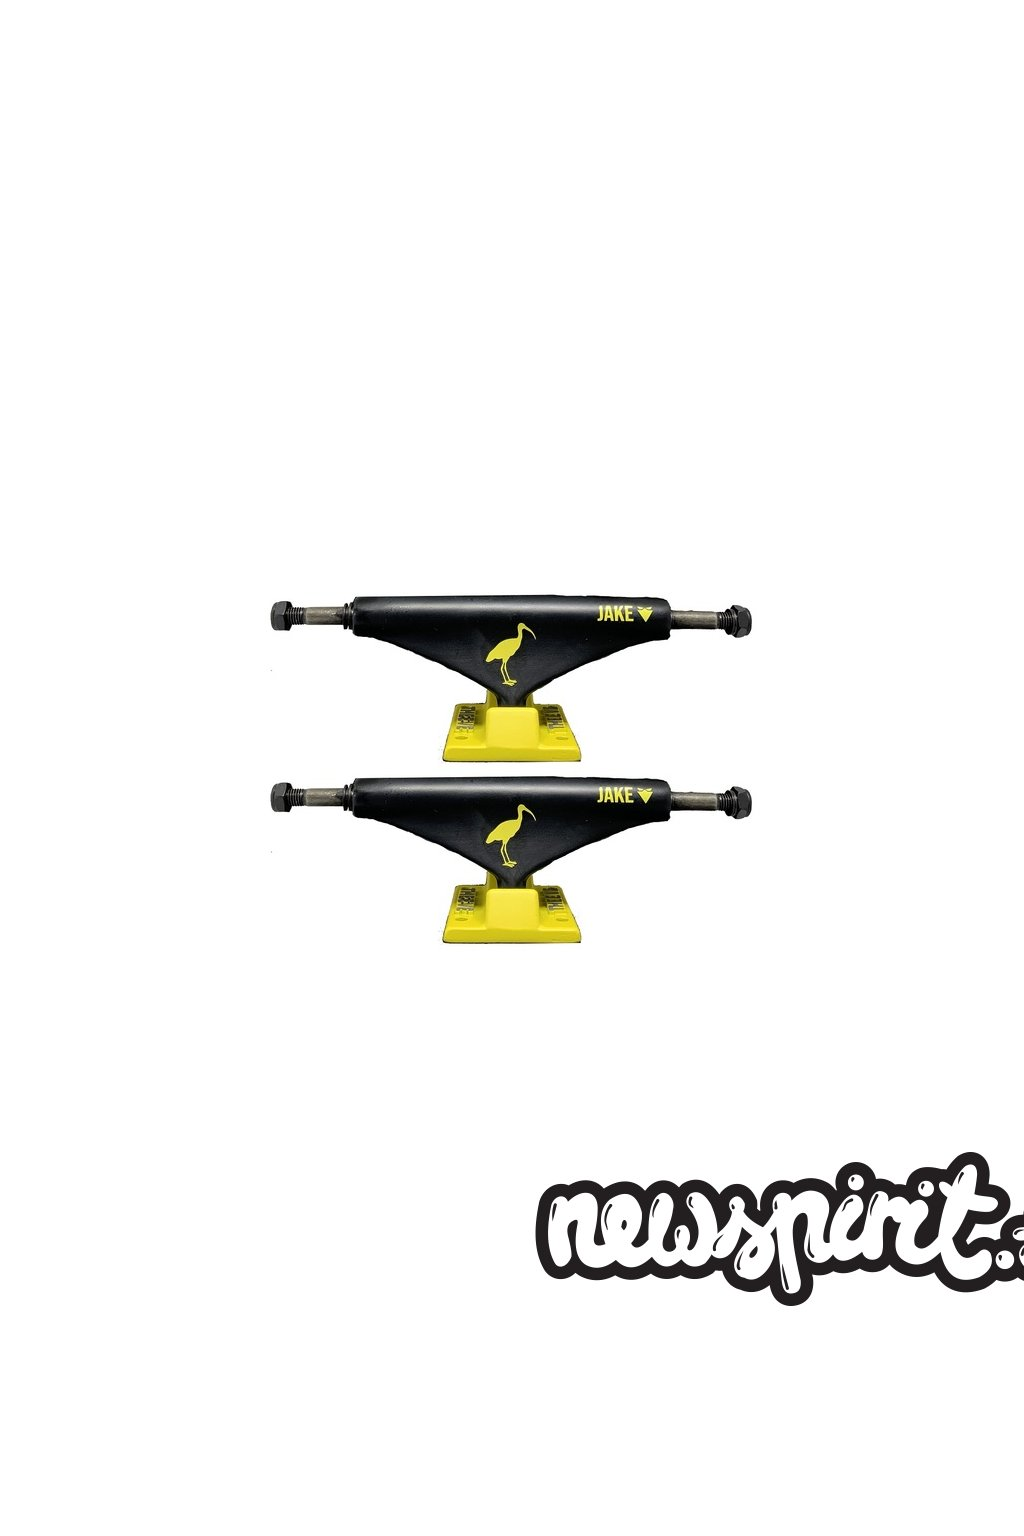 skateboard trucky THEEVE CSX HOLLOW DUNCOMBE IBIS